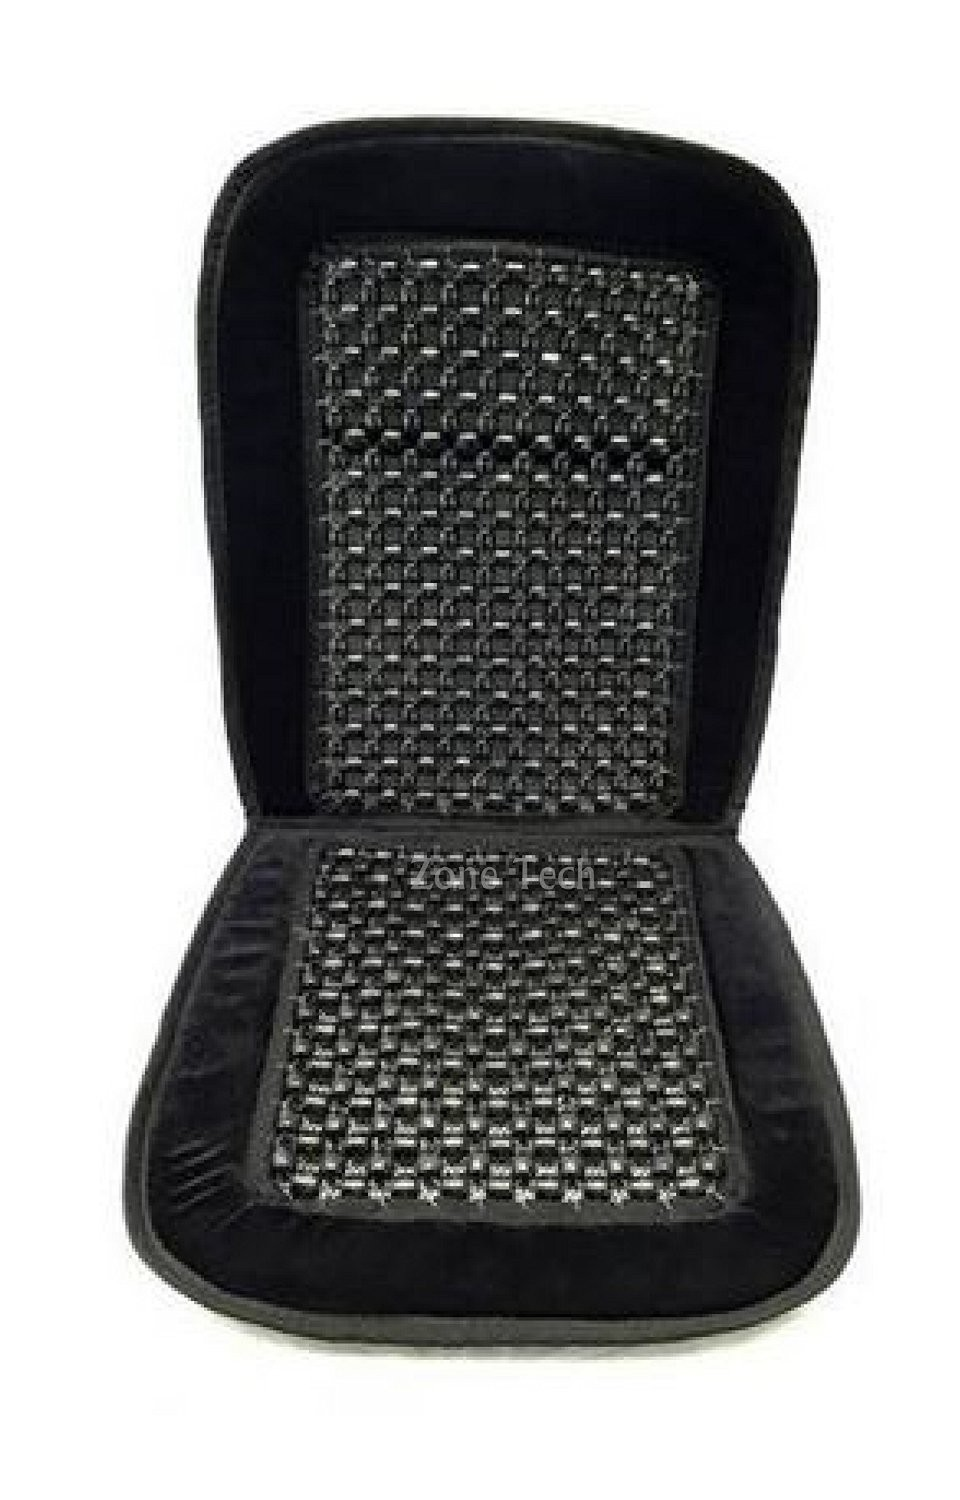 Comfort Products Beaded Seat Cover Autos Post